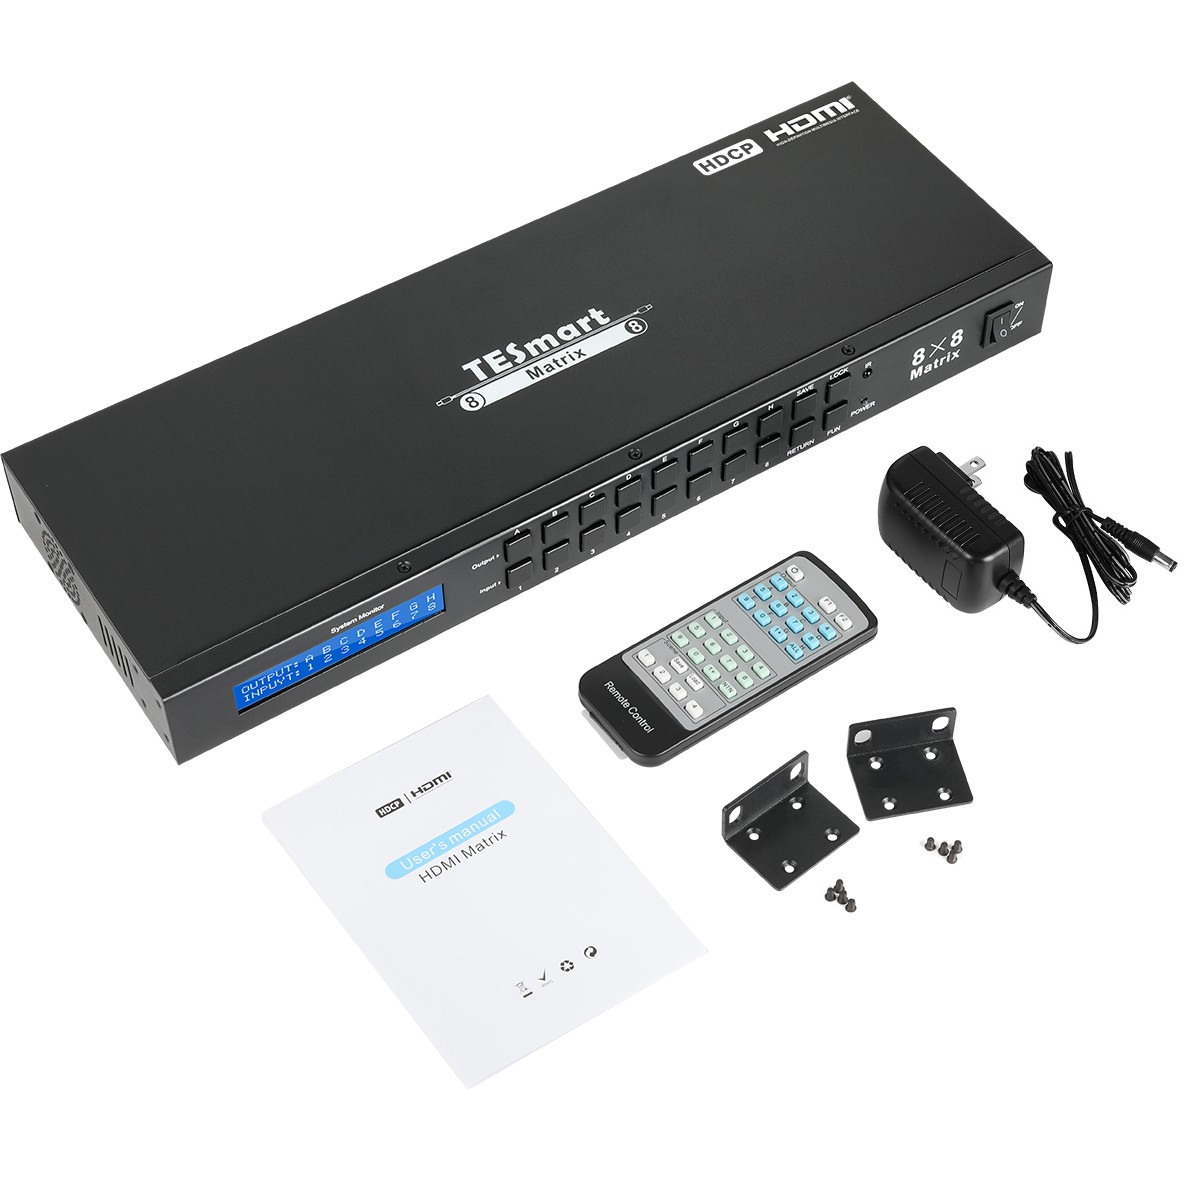 support 1080p 4k hdmi matrix switcher 8x8 supplier for media player-13